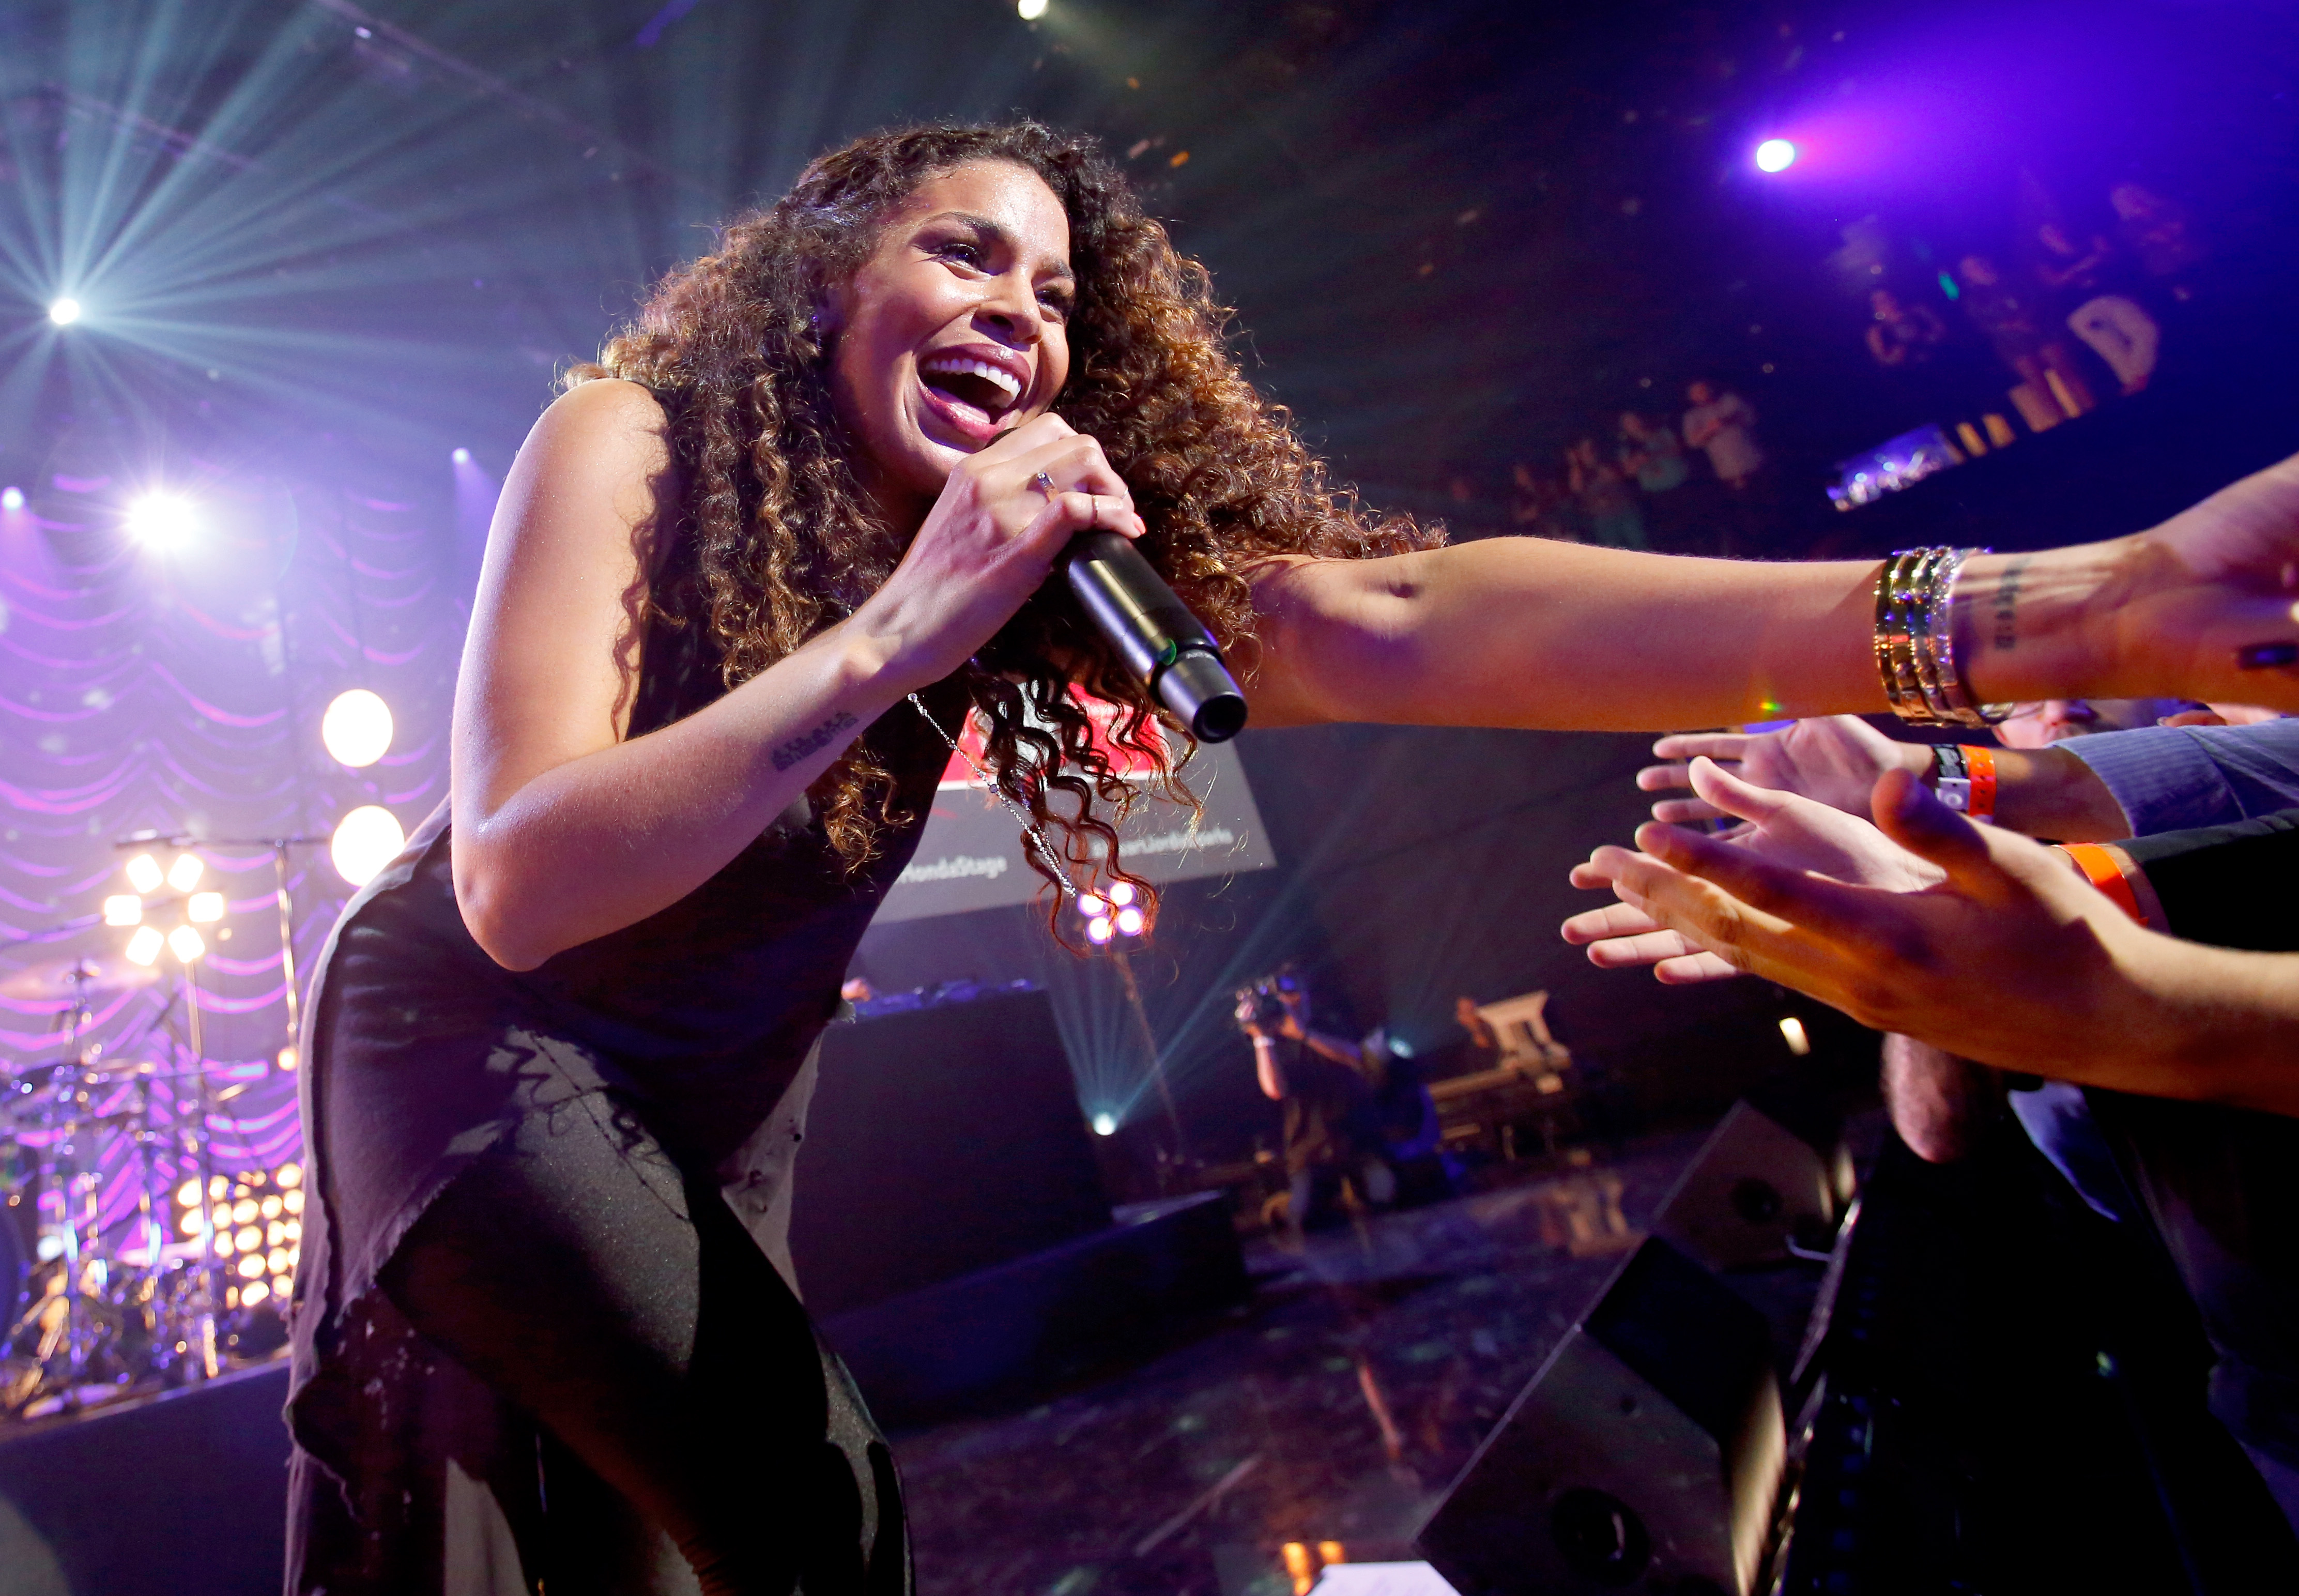 BURBANK, CA - JUNE 25:  Singer Jordin Sparks performs on the Honda Stage at the iHeartRadio Theater Los Angeles on June 25, 2015 in Burbank, California.  (Photo by Rich Polk/Getty Images for iHeartMedia)